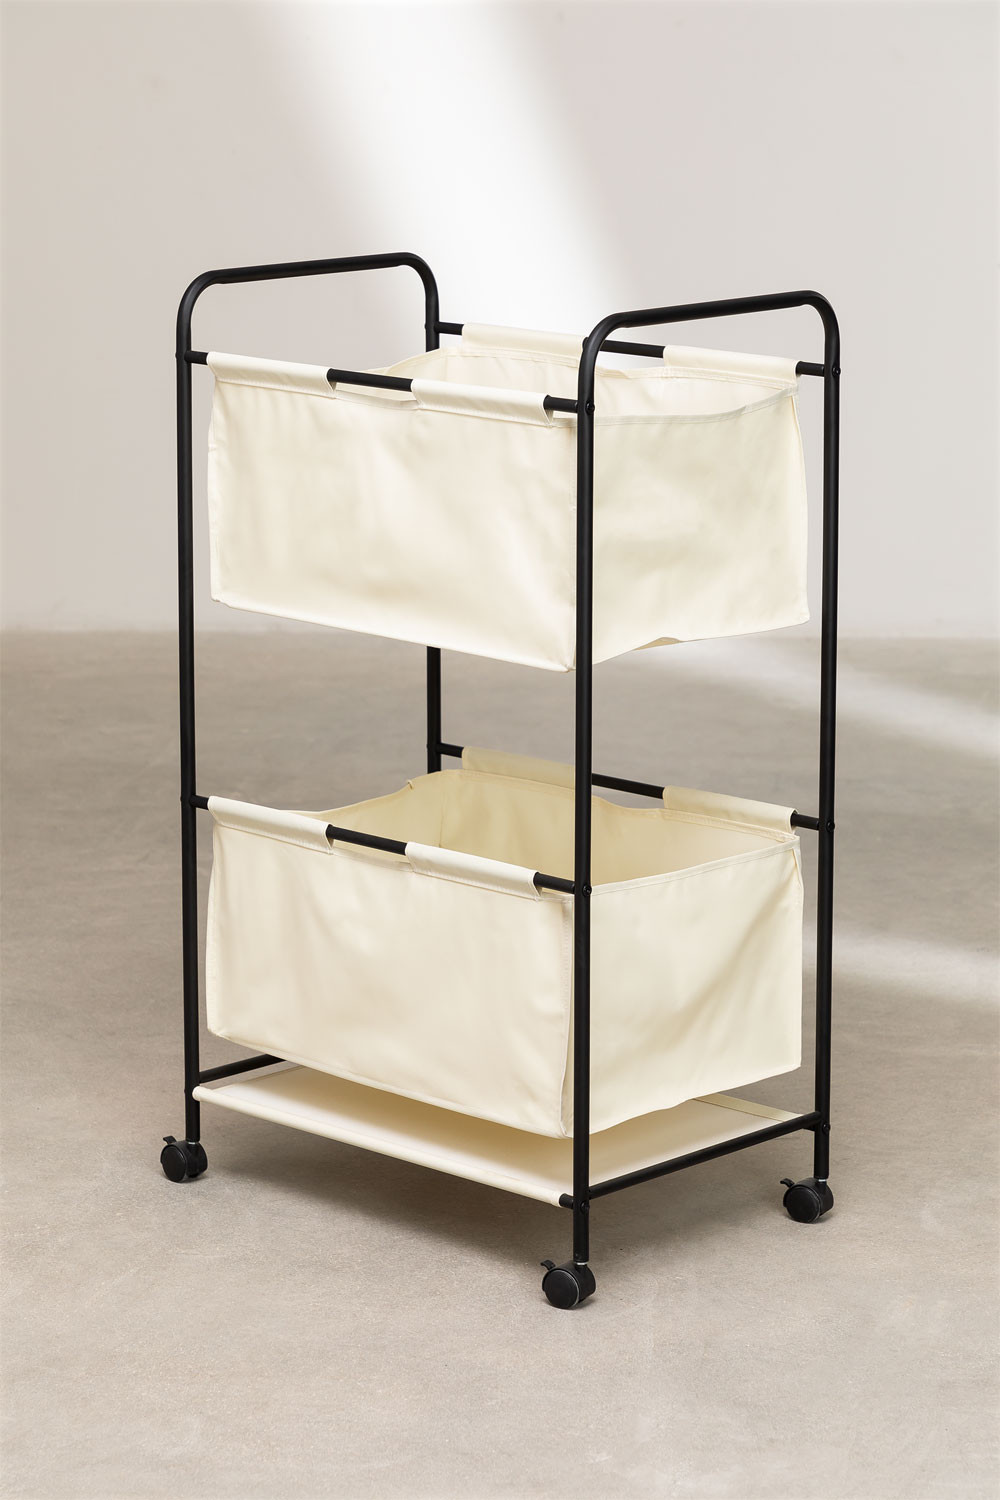 Coqos trolley 02 , gallery image 1